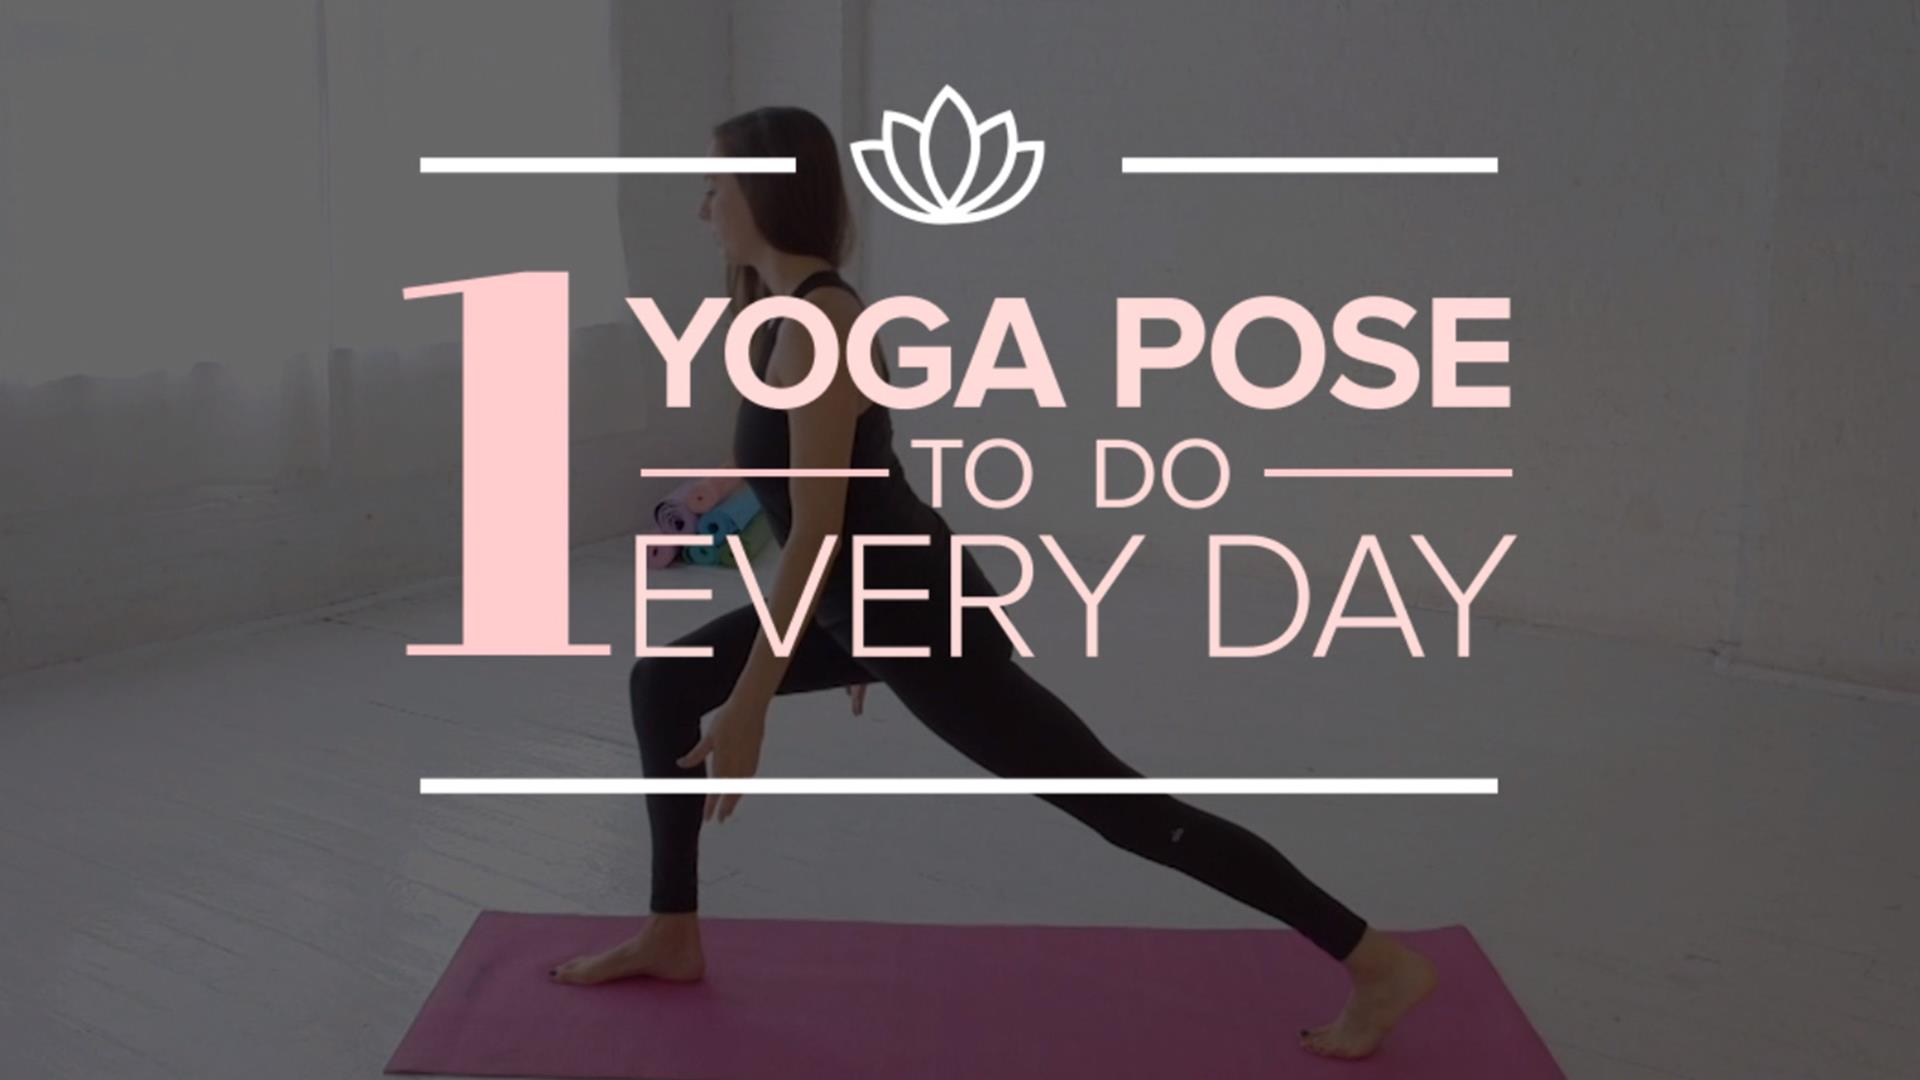 The 1 yoga pose to do every day